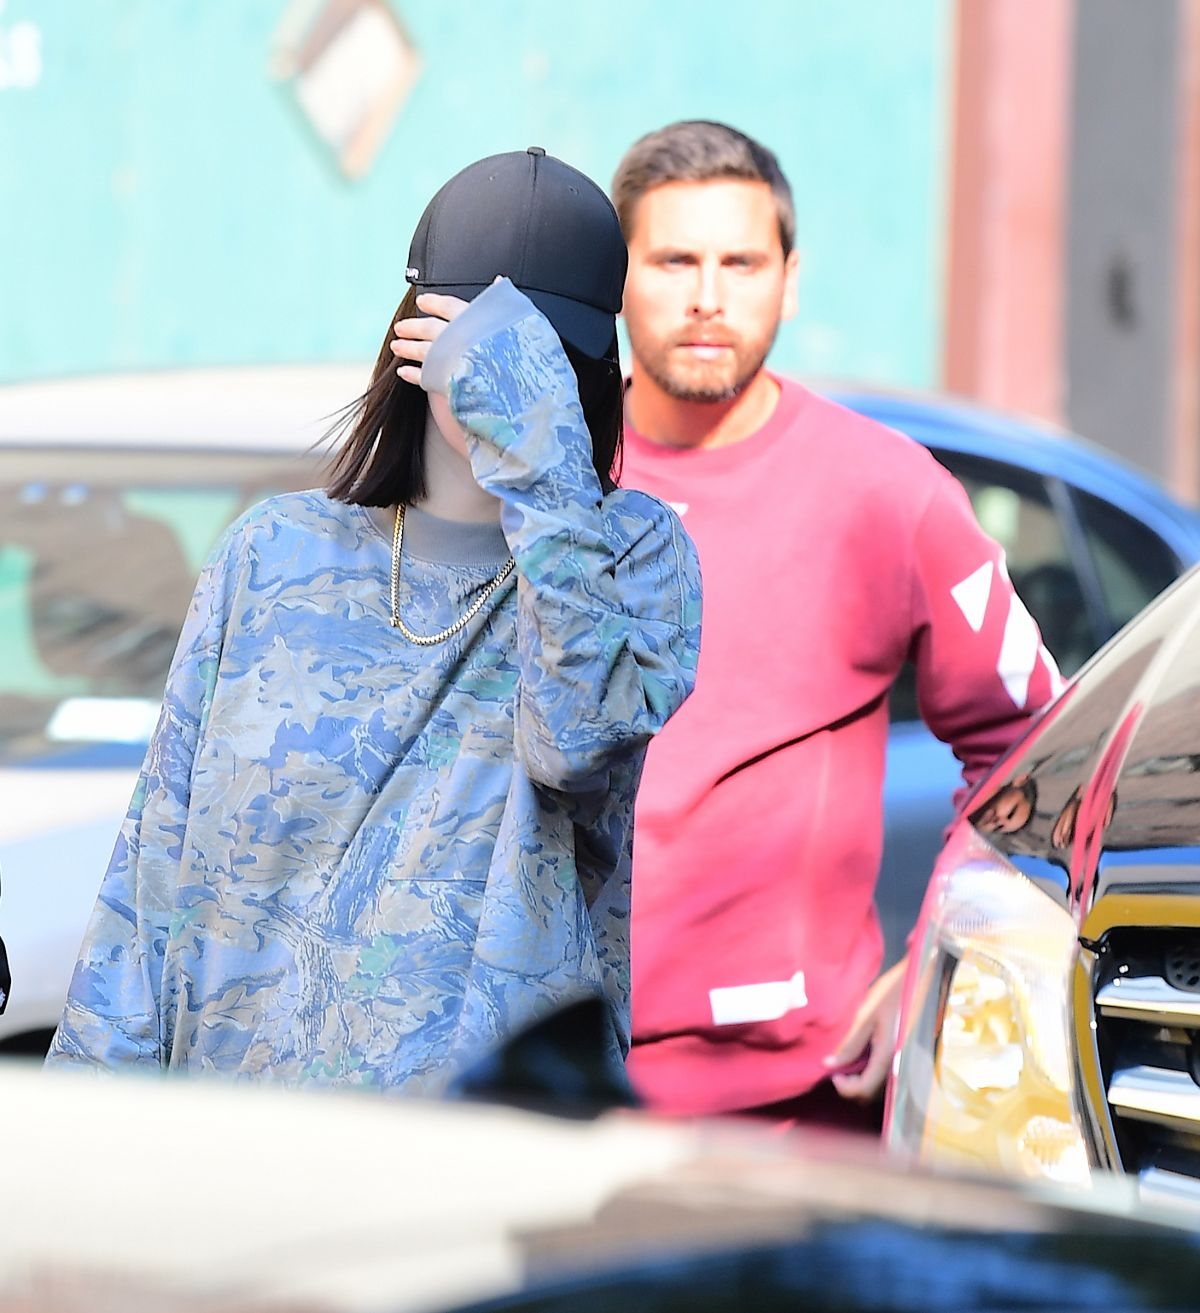 KENDALL JENNER and Scott Disick Out for Lunch in New York 09/05/2017